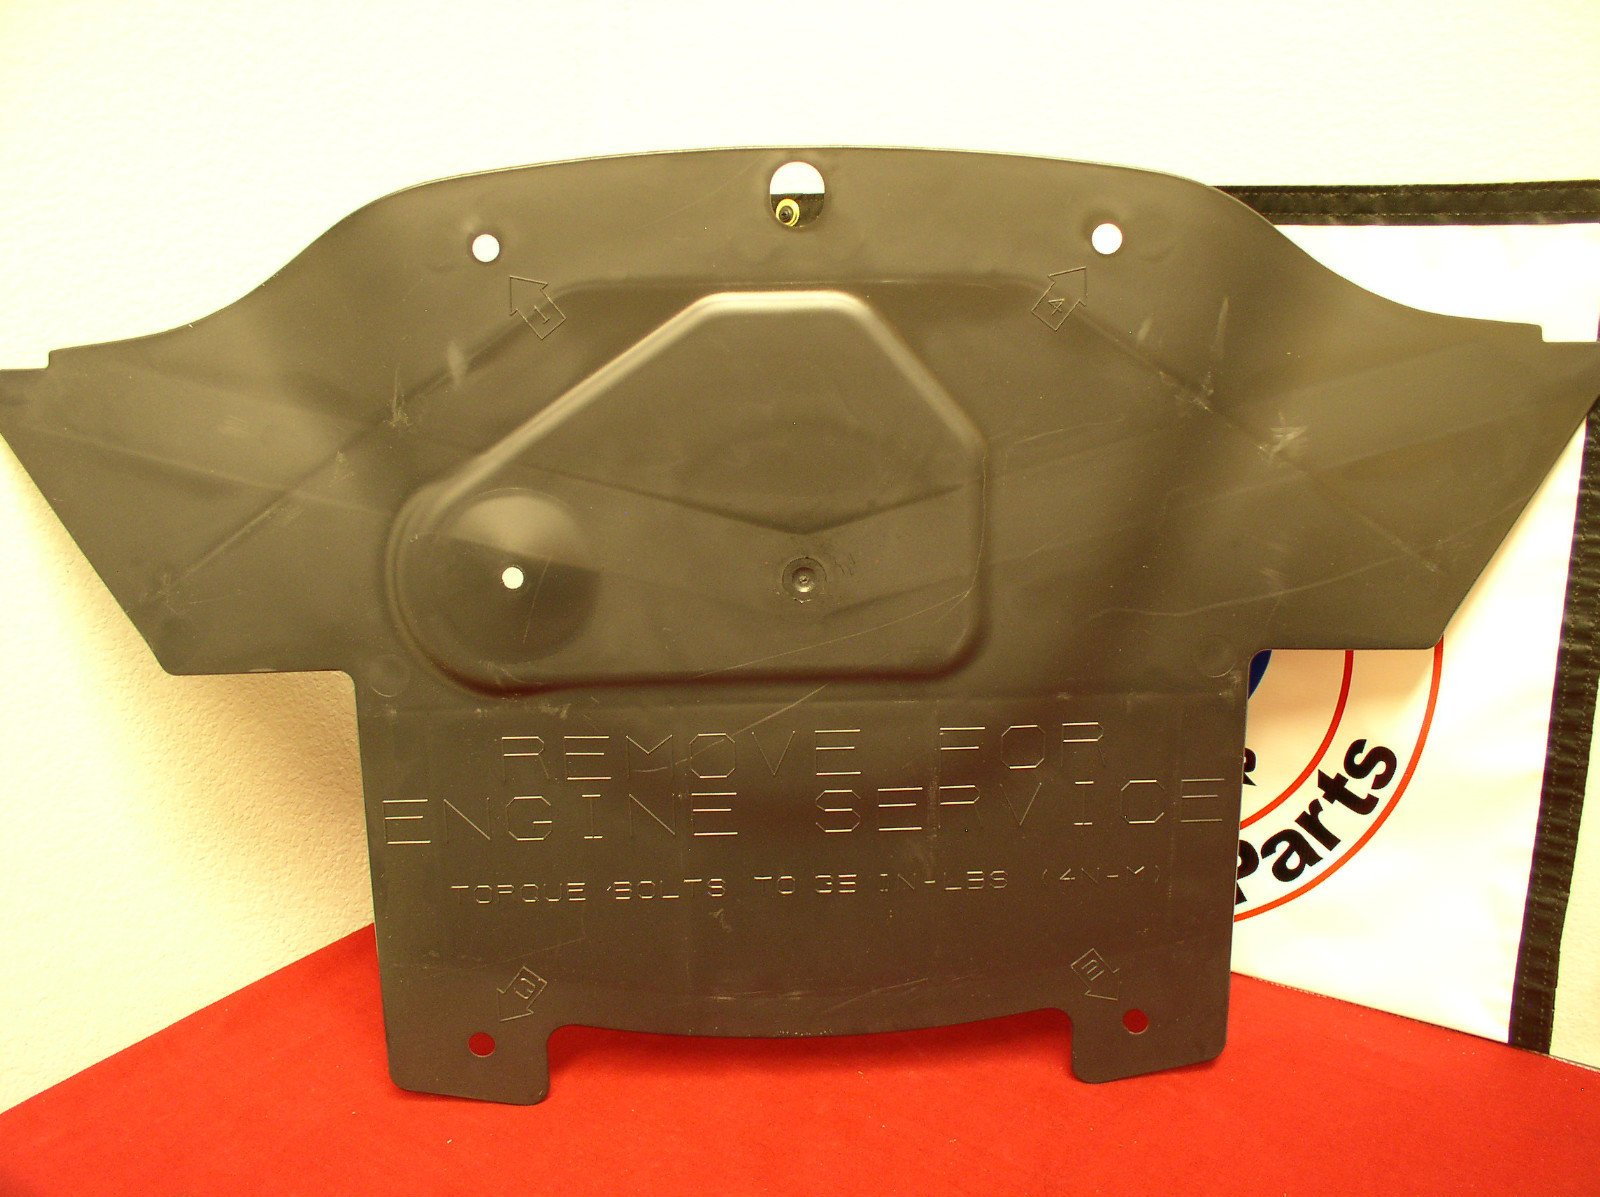 New Replacement FRONT ENGINE SPLASH SHIELD FOR 2005-2010 CHRYSLER OEM Quality